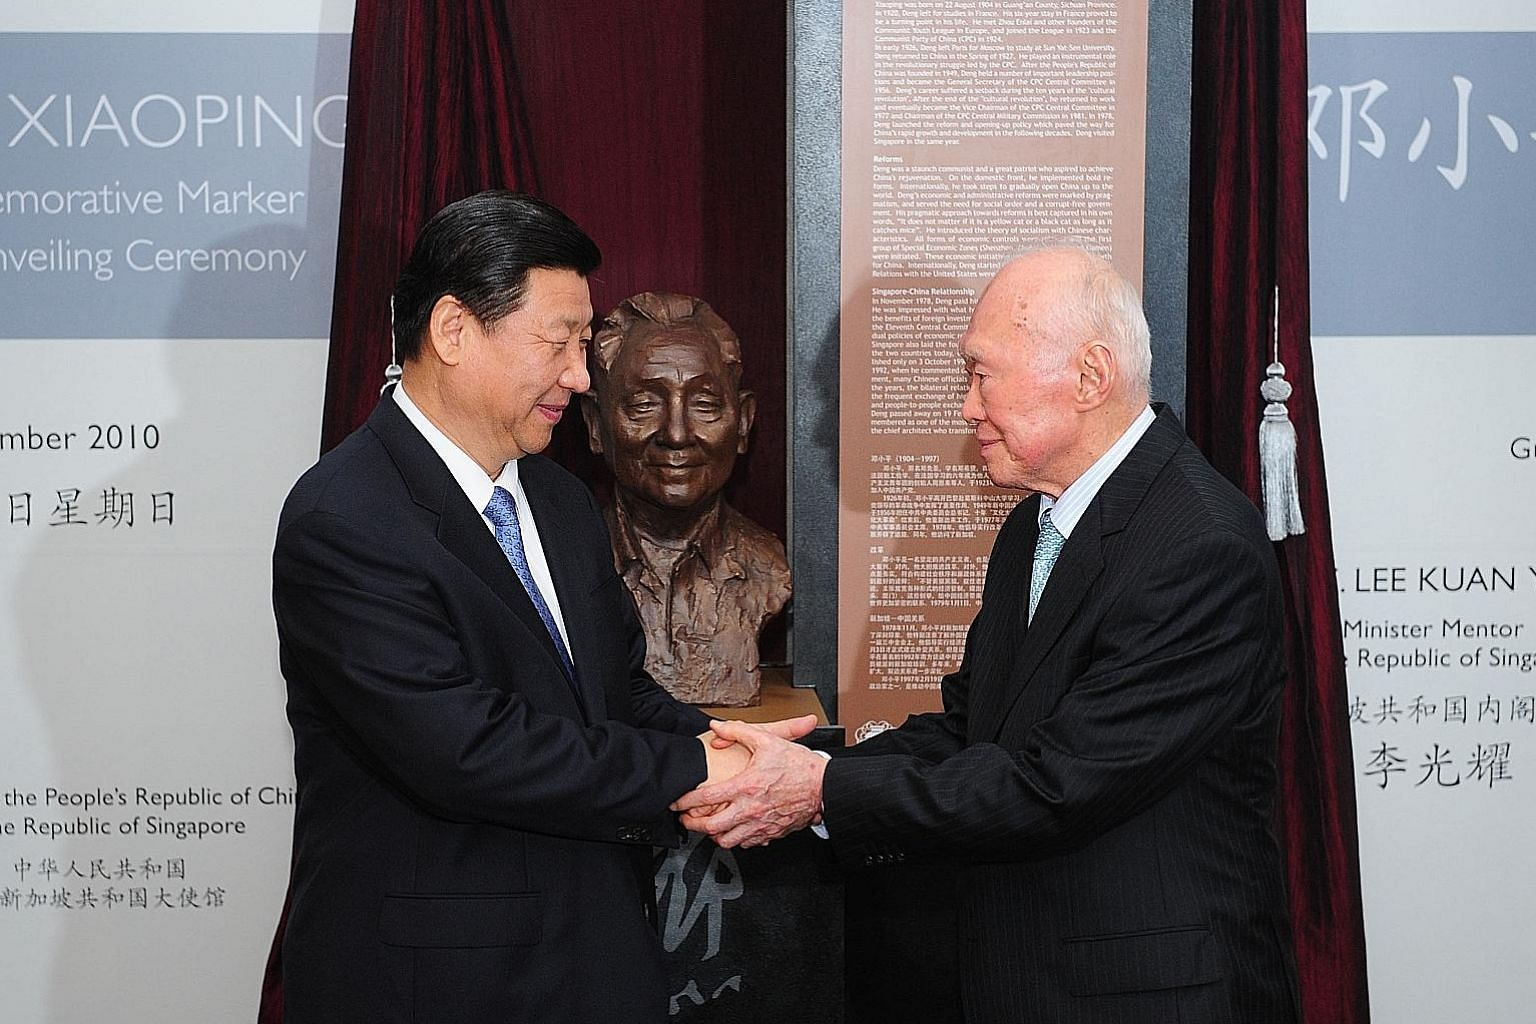 Then Chinese vice-president Xi Jinping (left) and Minister Mentor Lee Kuan Yew at the unveiling of the Deng Xiaoping commemorative marker in November 2010. Mr Xi had been invited to Singapore to unveil a marker and bust of Deng under the programme, V